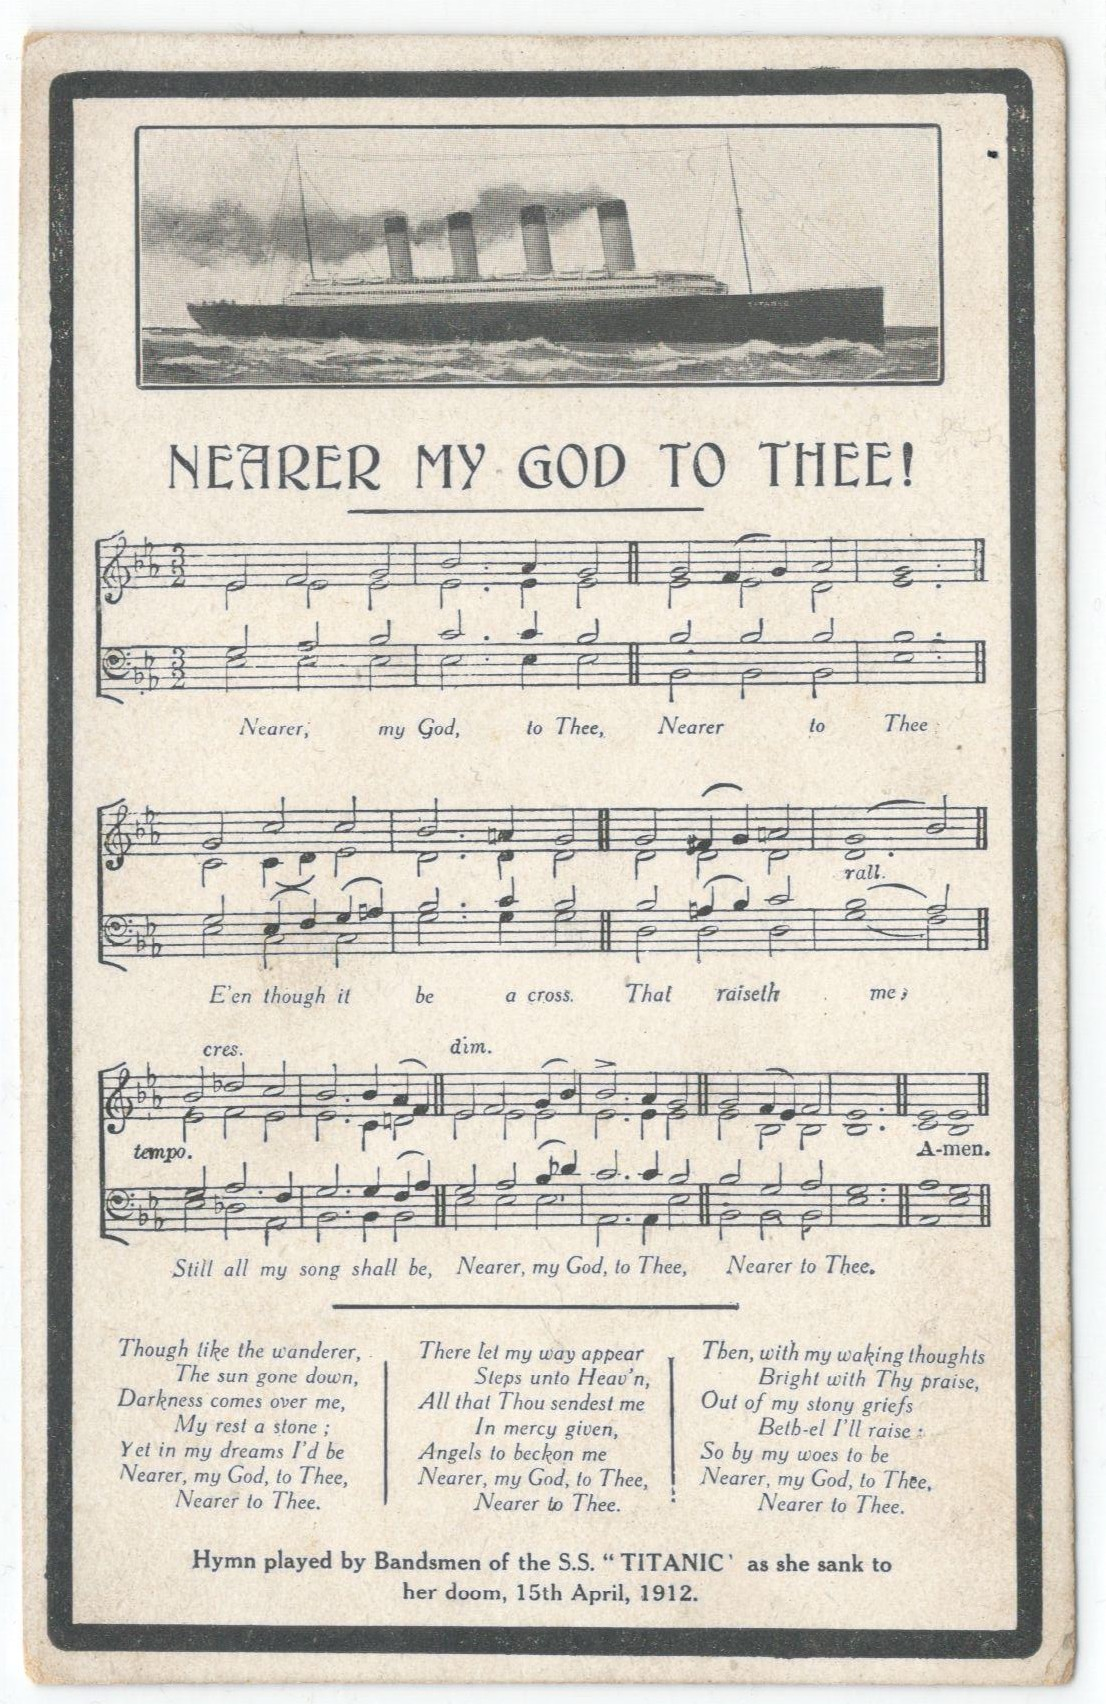 Lot 93 - NEARER MY GOD TO THEE - SOUND POSTCARD - HYMN PLAYED BY BANDSMEN OF THE S.S. TITANIC AS SHE SANK